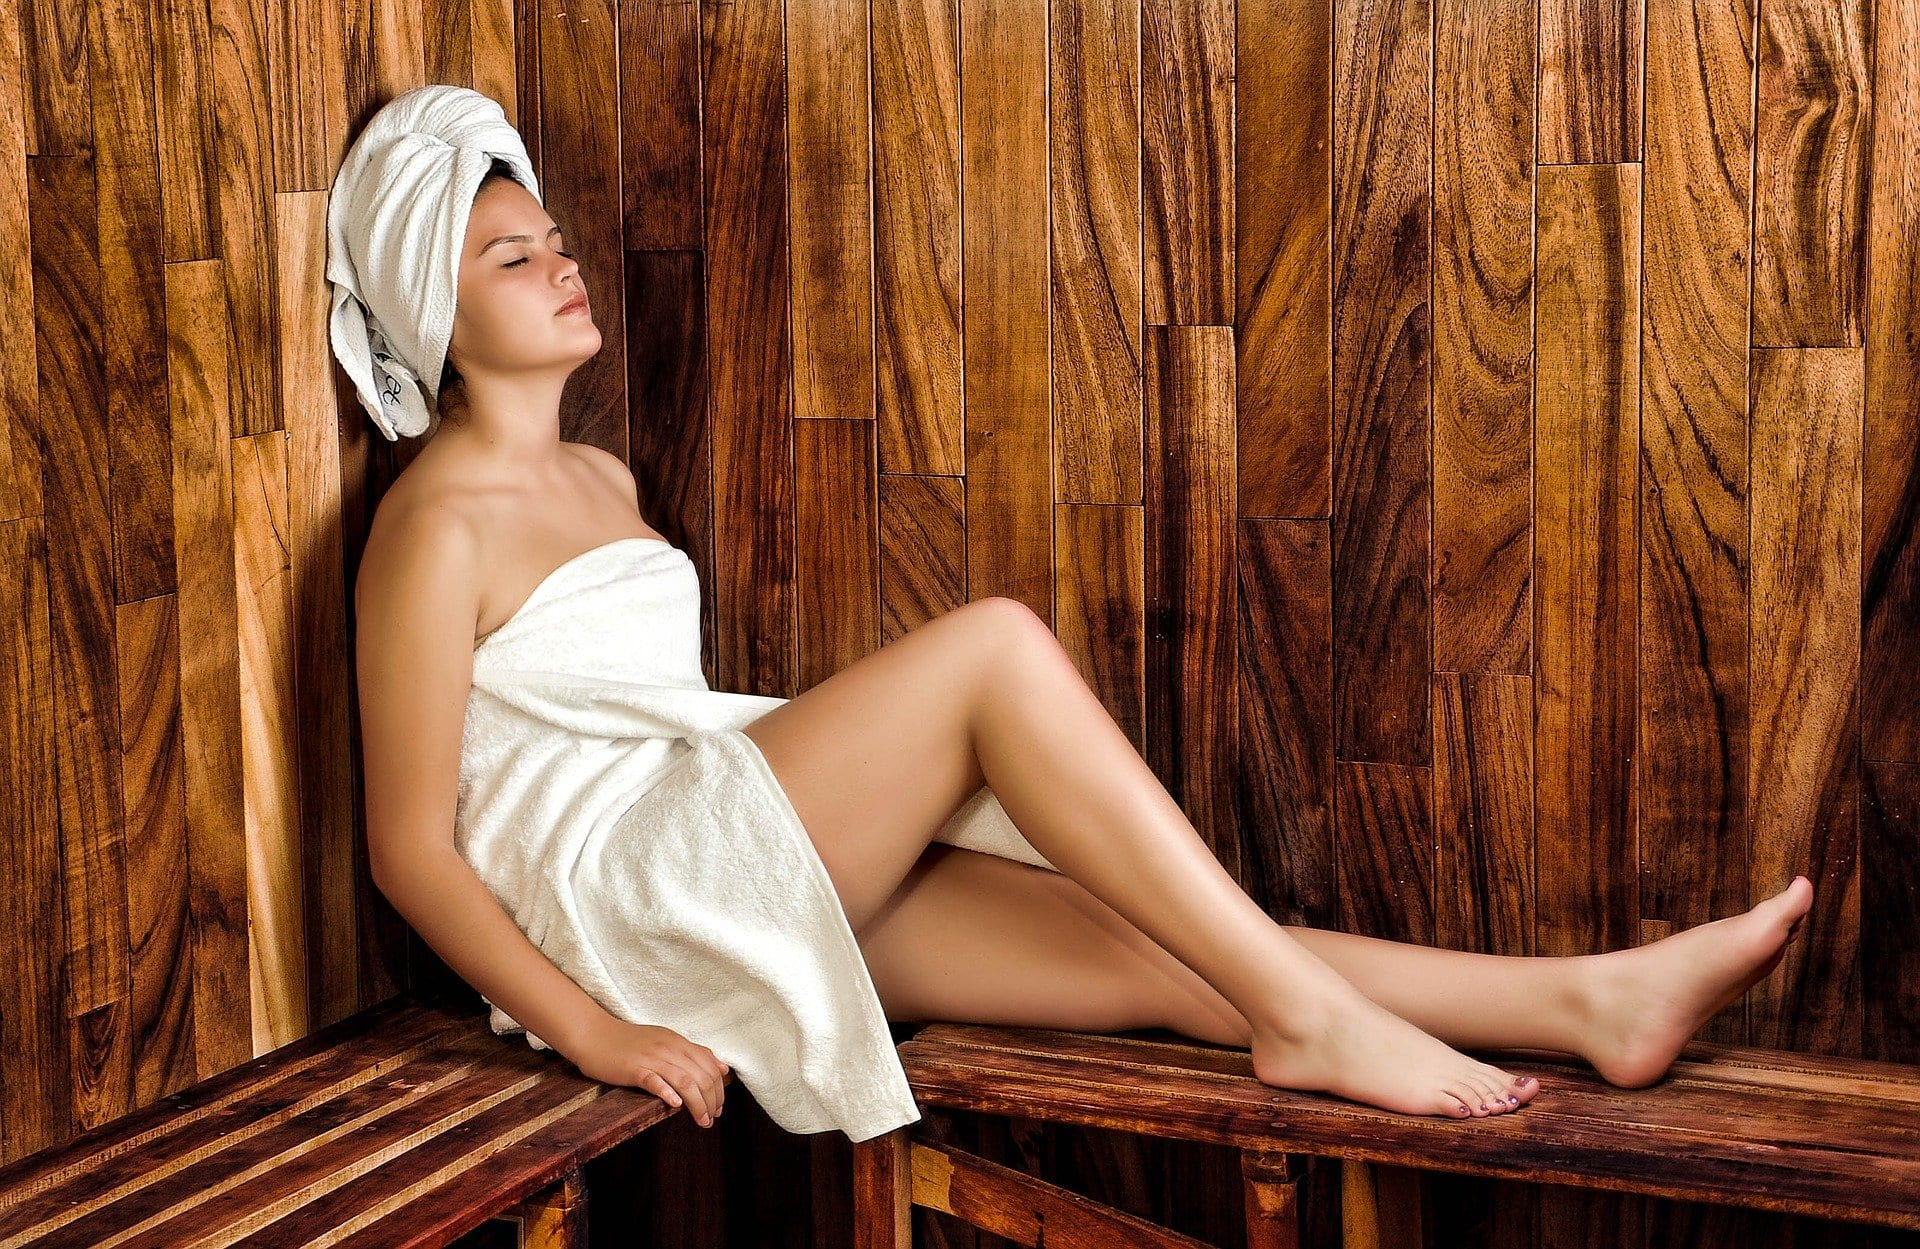 National Relaxation Day at The Cave Sauna and Day Spa